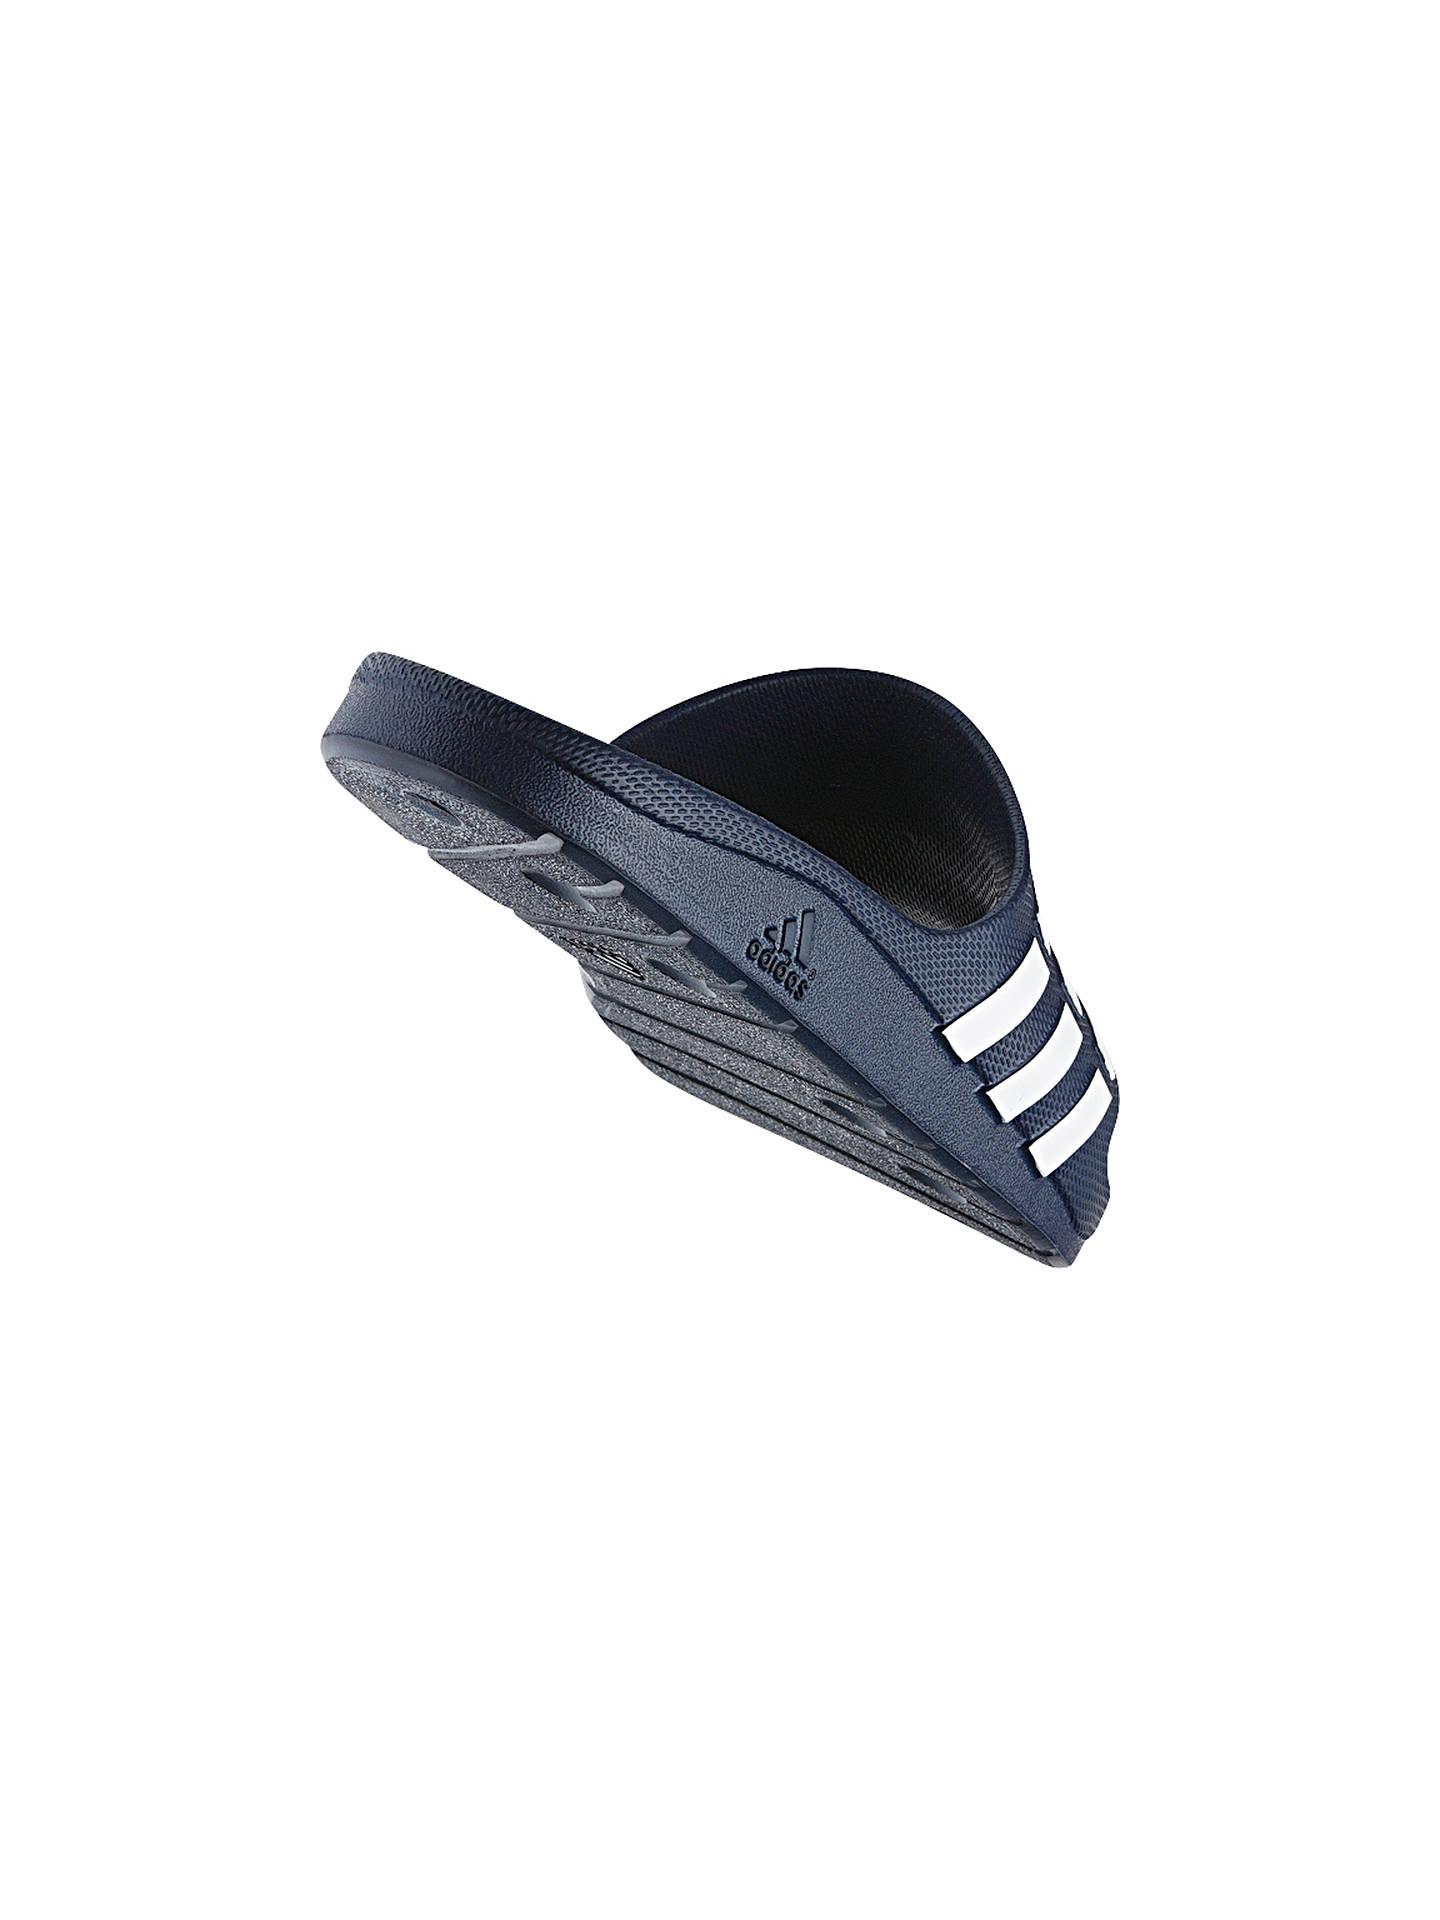 Buy adidas Duramo Women's Pool Slides, Blue, 7 Online at johnlewis.com